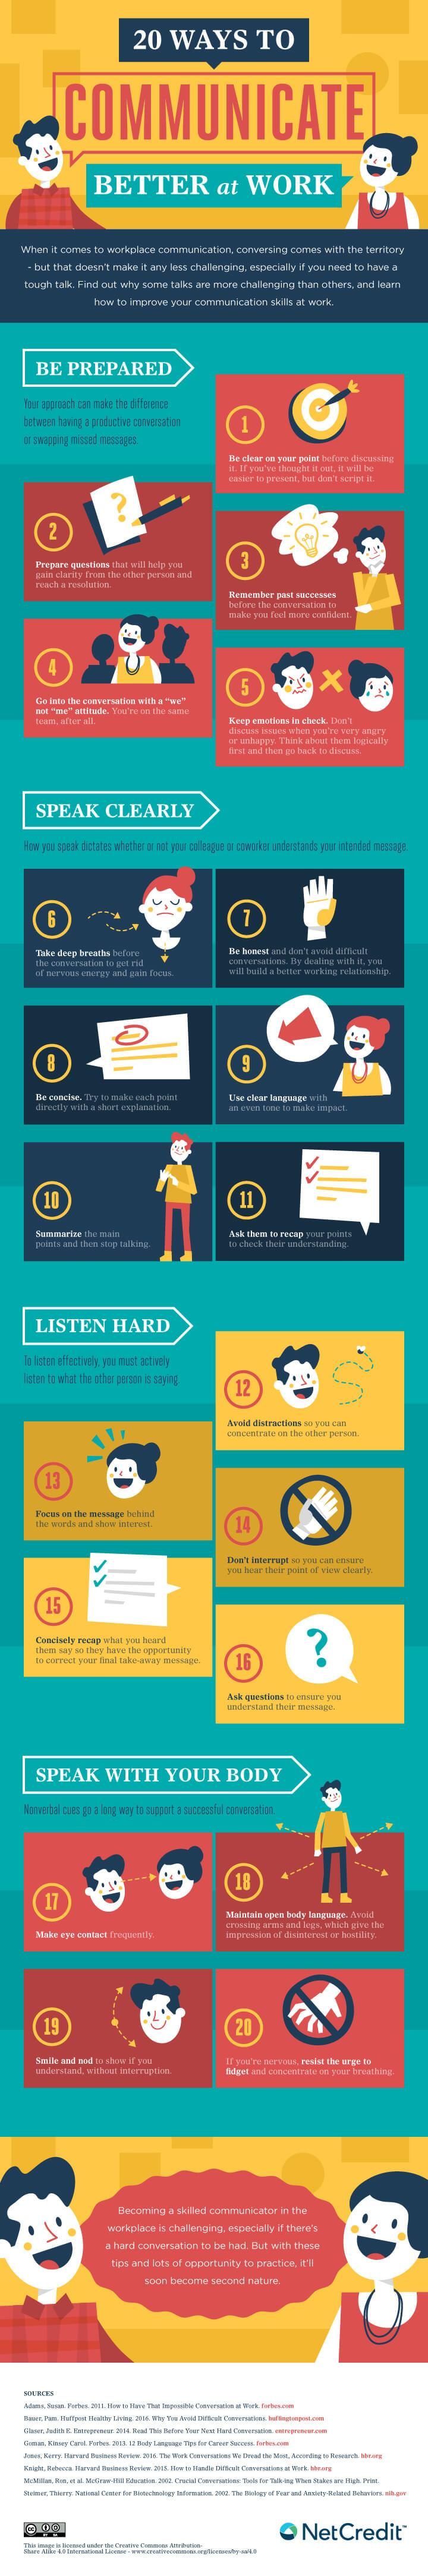 ways-to-communicate-better-at-work-infographic